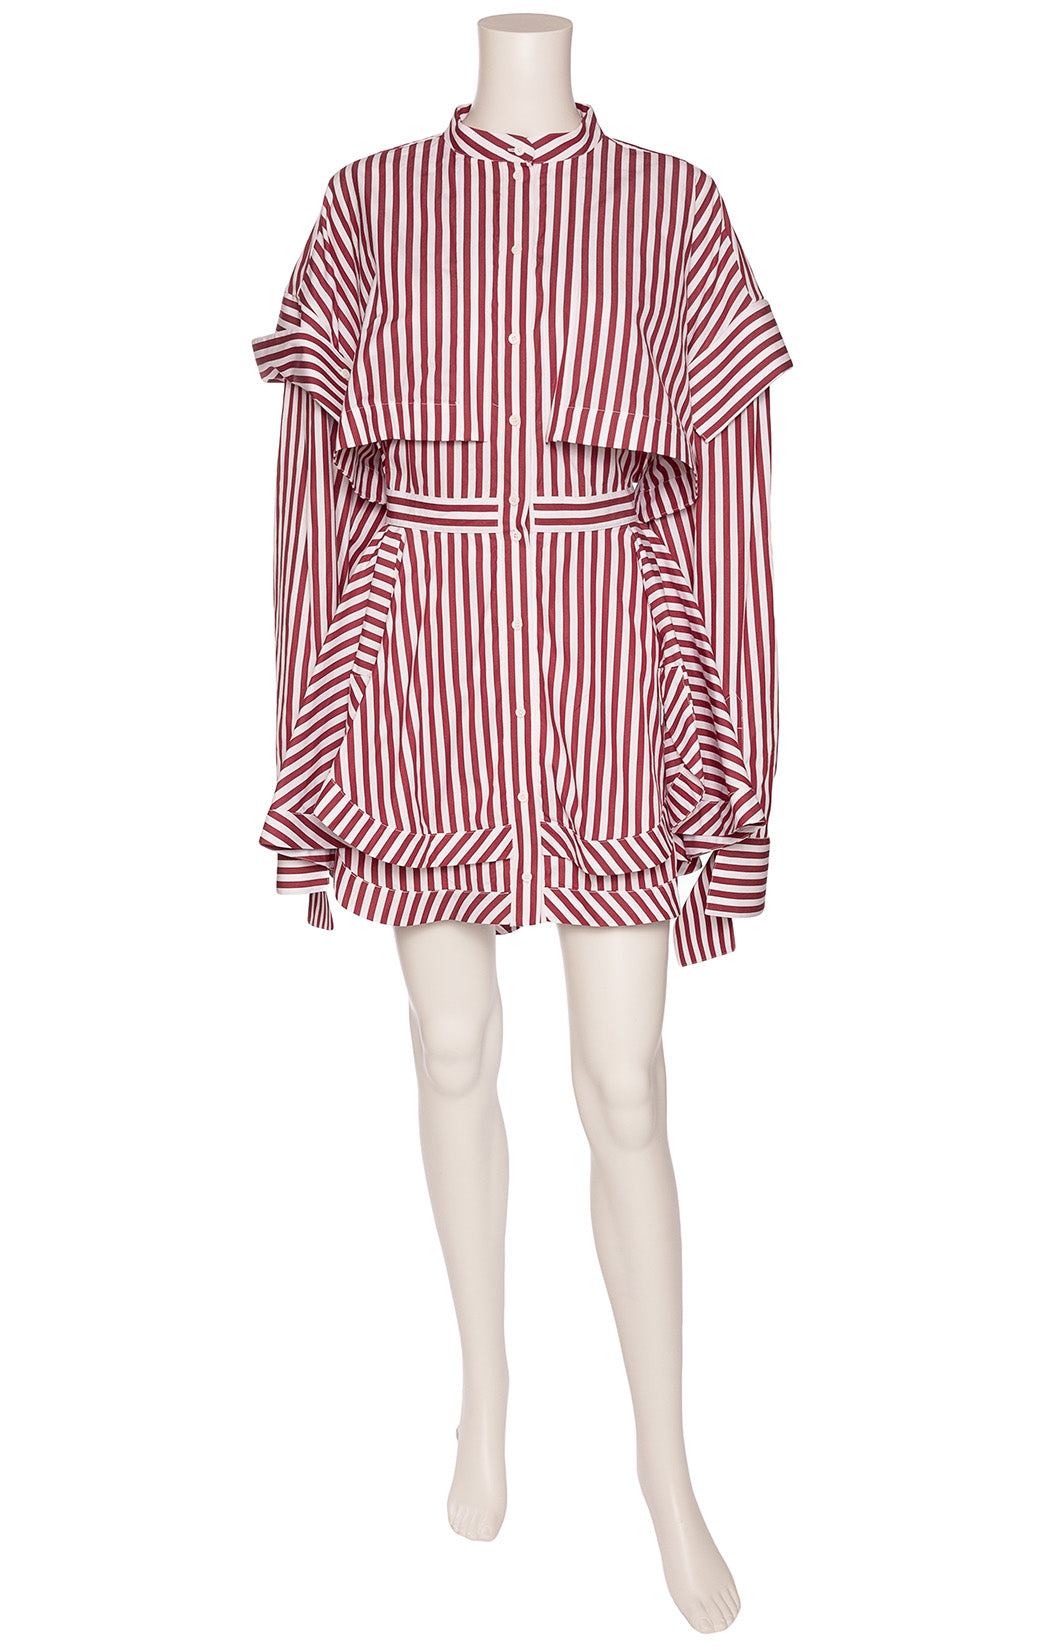 Maroon and white stripe dress